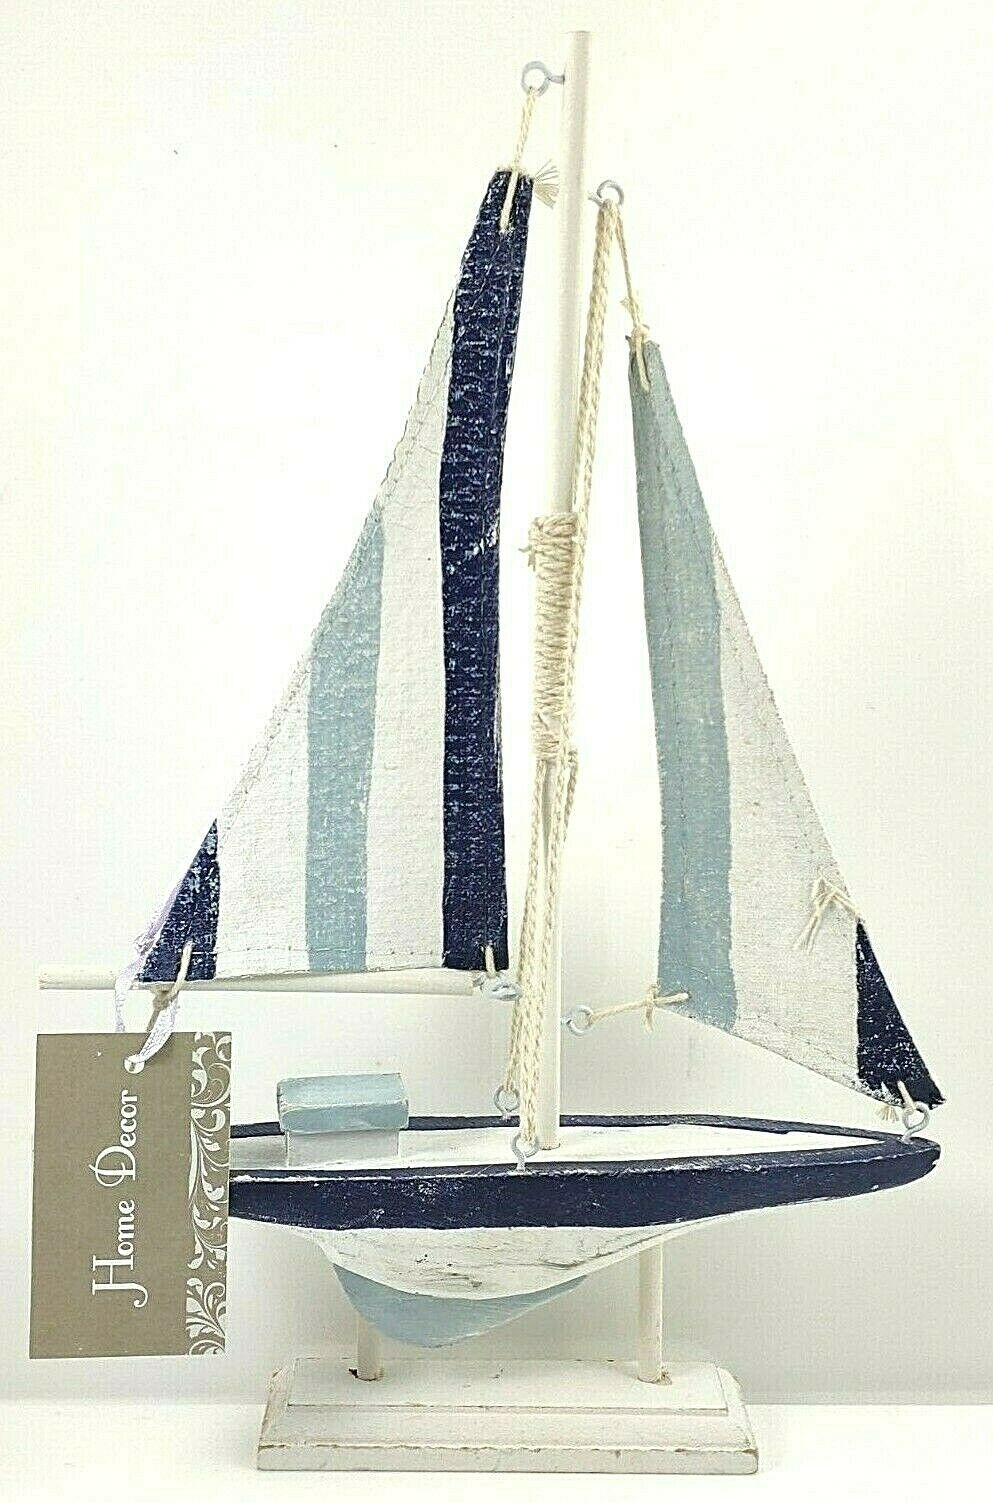 LY BLUE AND White Canvas Sail Boat Nautical Beach Bathroom ... Boat Ornaments For Bathroom on decks for boats, toilets for boats, wiring for boats, kitchen cabinets for boats, carpet for boats, sump pumps for boats, beds for boats, bedding for boats, lighting for boats, grab rails for boats, furniture for boats, windows for boats, steps for boats, upholstery for boats, doors for boats, boilers for boats, carports for boats, solar panels for boats, grills for boats, sinks for boats,